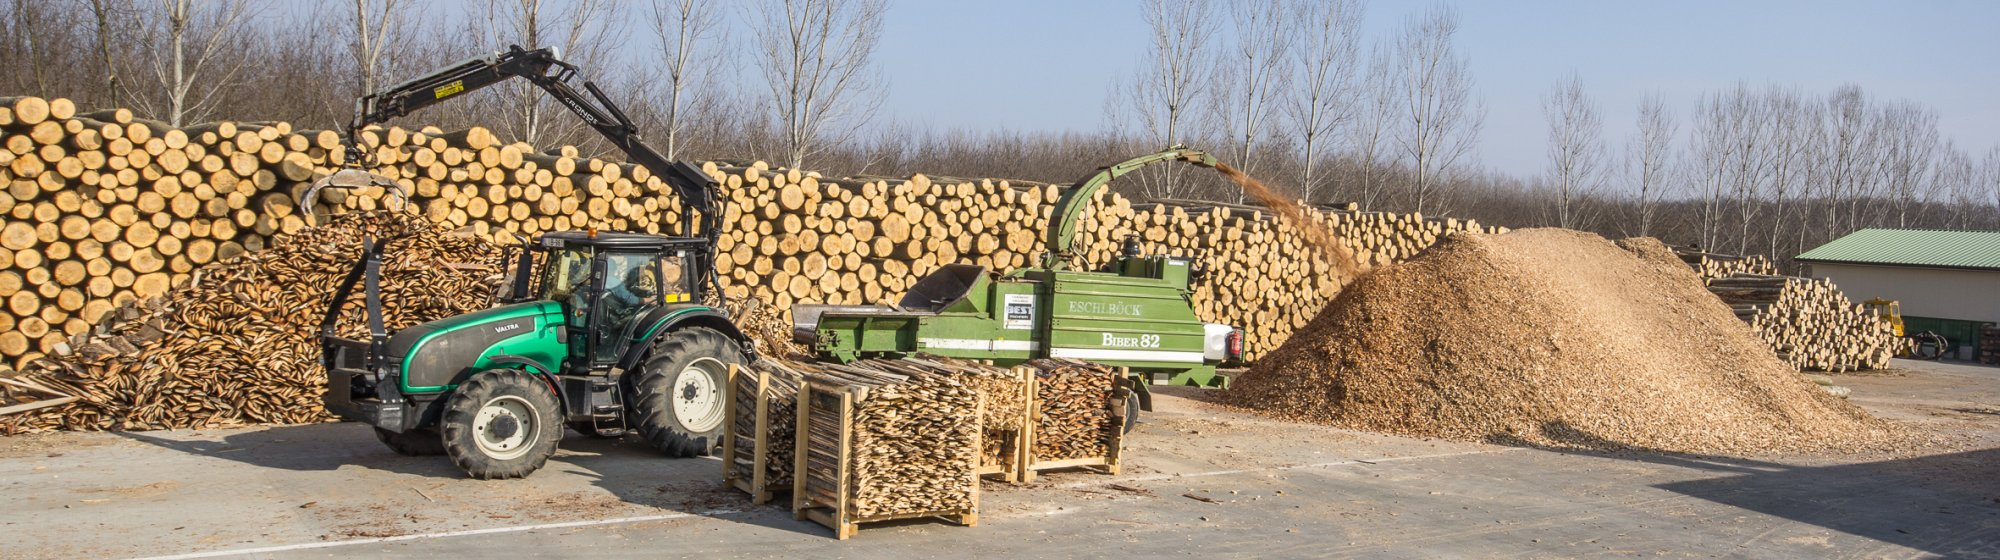 Preparation of wood chips